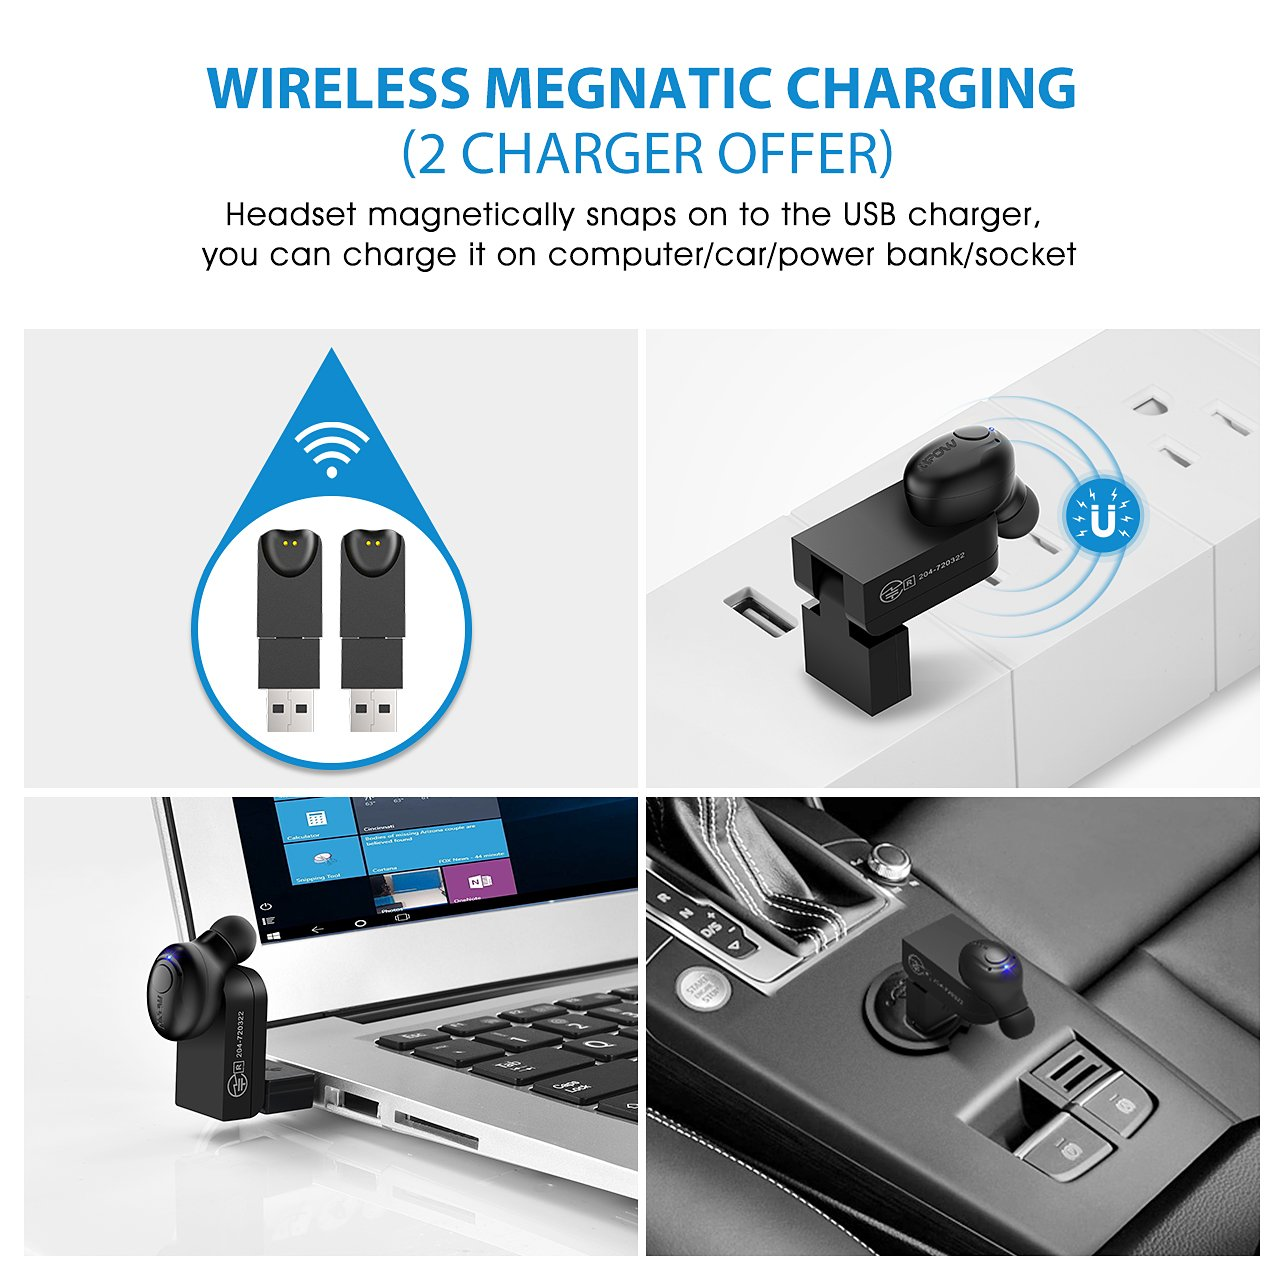 Mpow EM1 Bluetooth Earpiece, V4.1 Wireless Headphones, 6-Hr Playing Time Mini Bluetooth Earbud with Microphone, Invisible Car Bluetooth Headset for Cell Phone (One Pcs, Two Charger) by Mpow (Image #4)